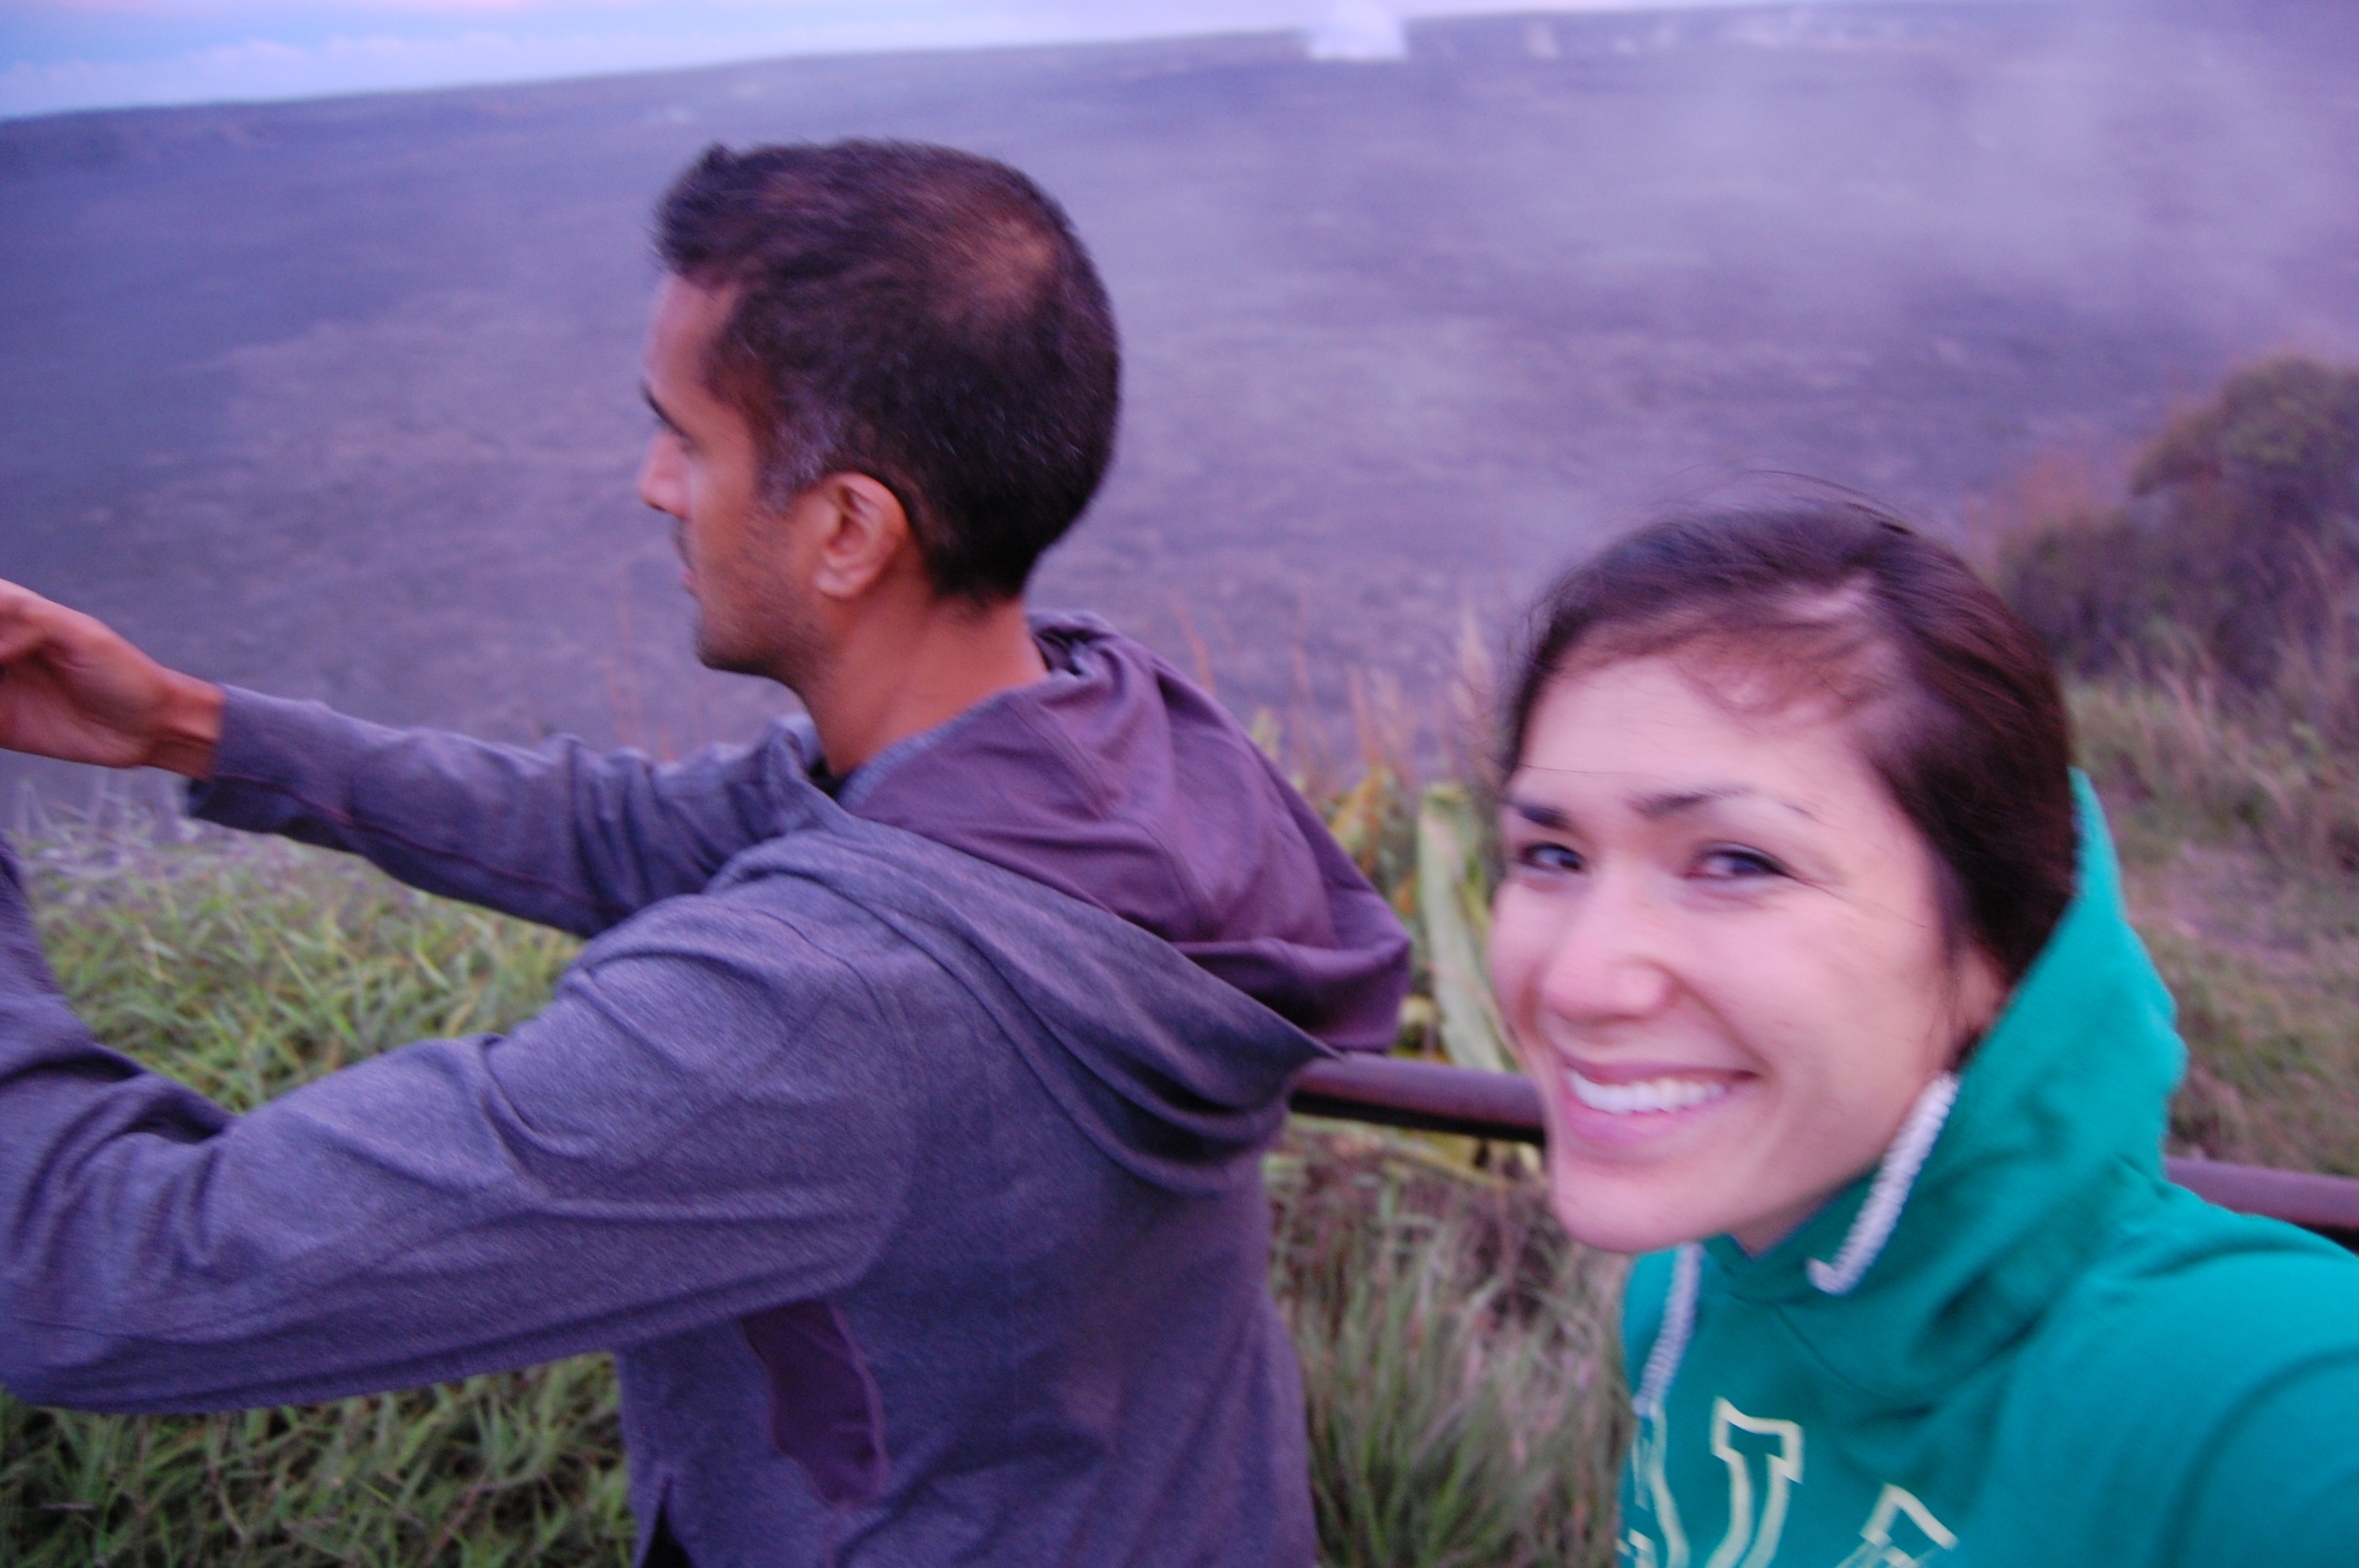 I allowed this dusk excursion to Kilauea's steam vents. The heat from one of the world's most active volcanoes is fine, just as long as we avoid evil soleil.